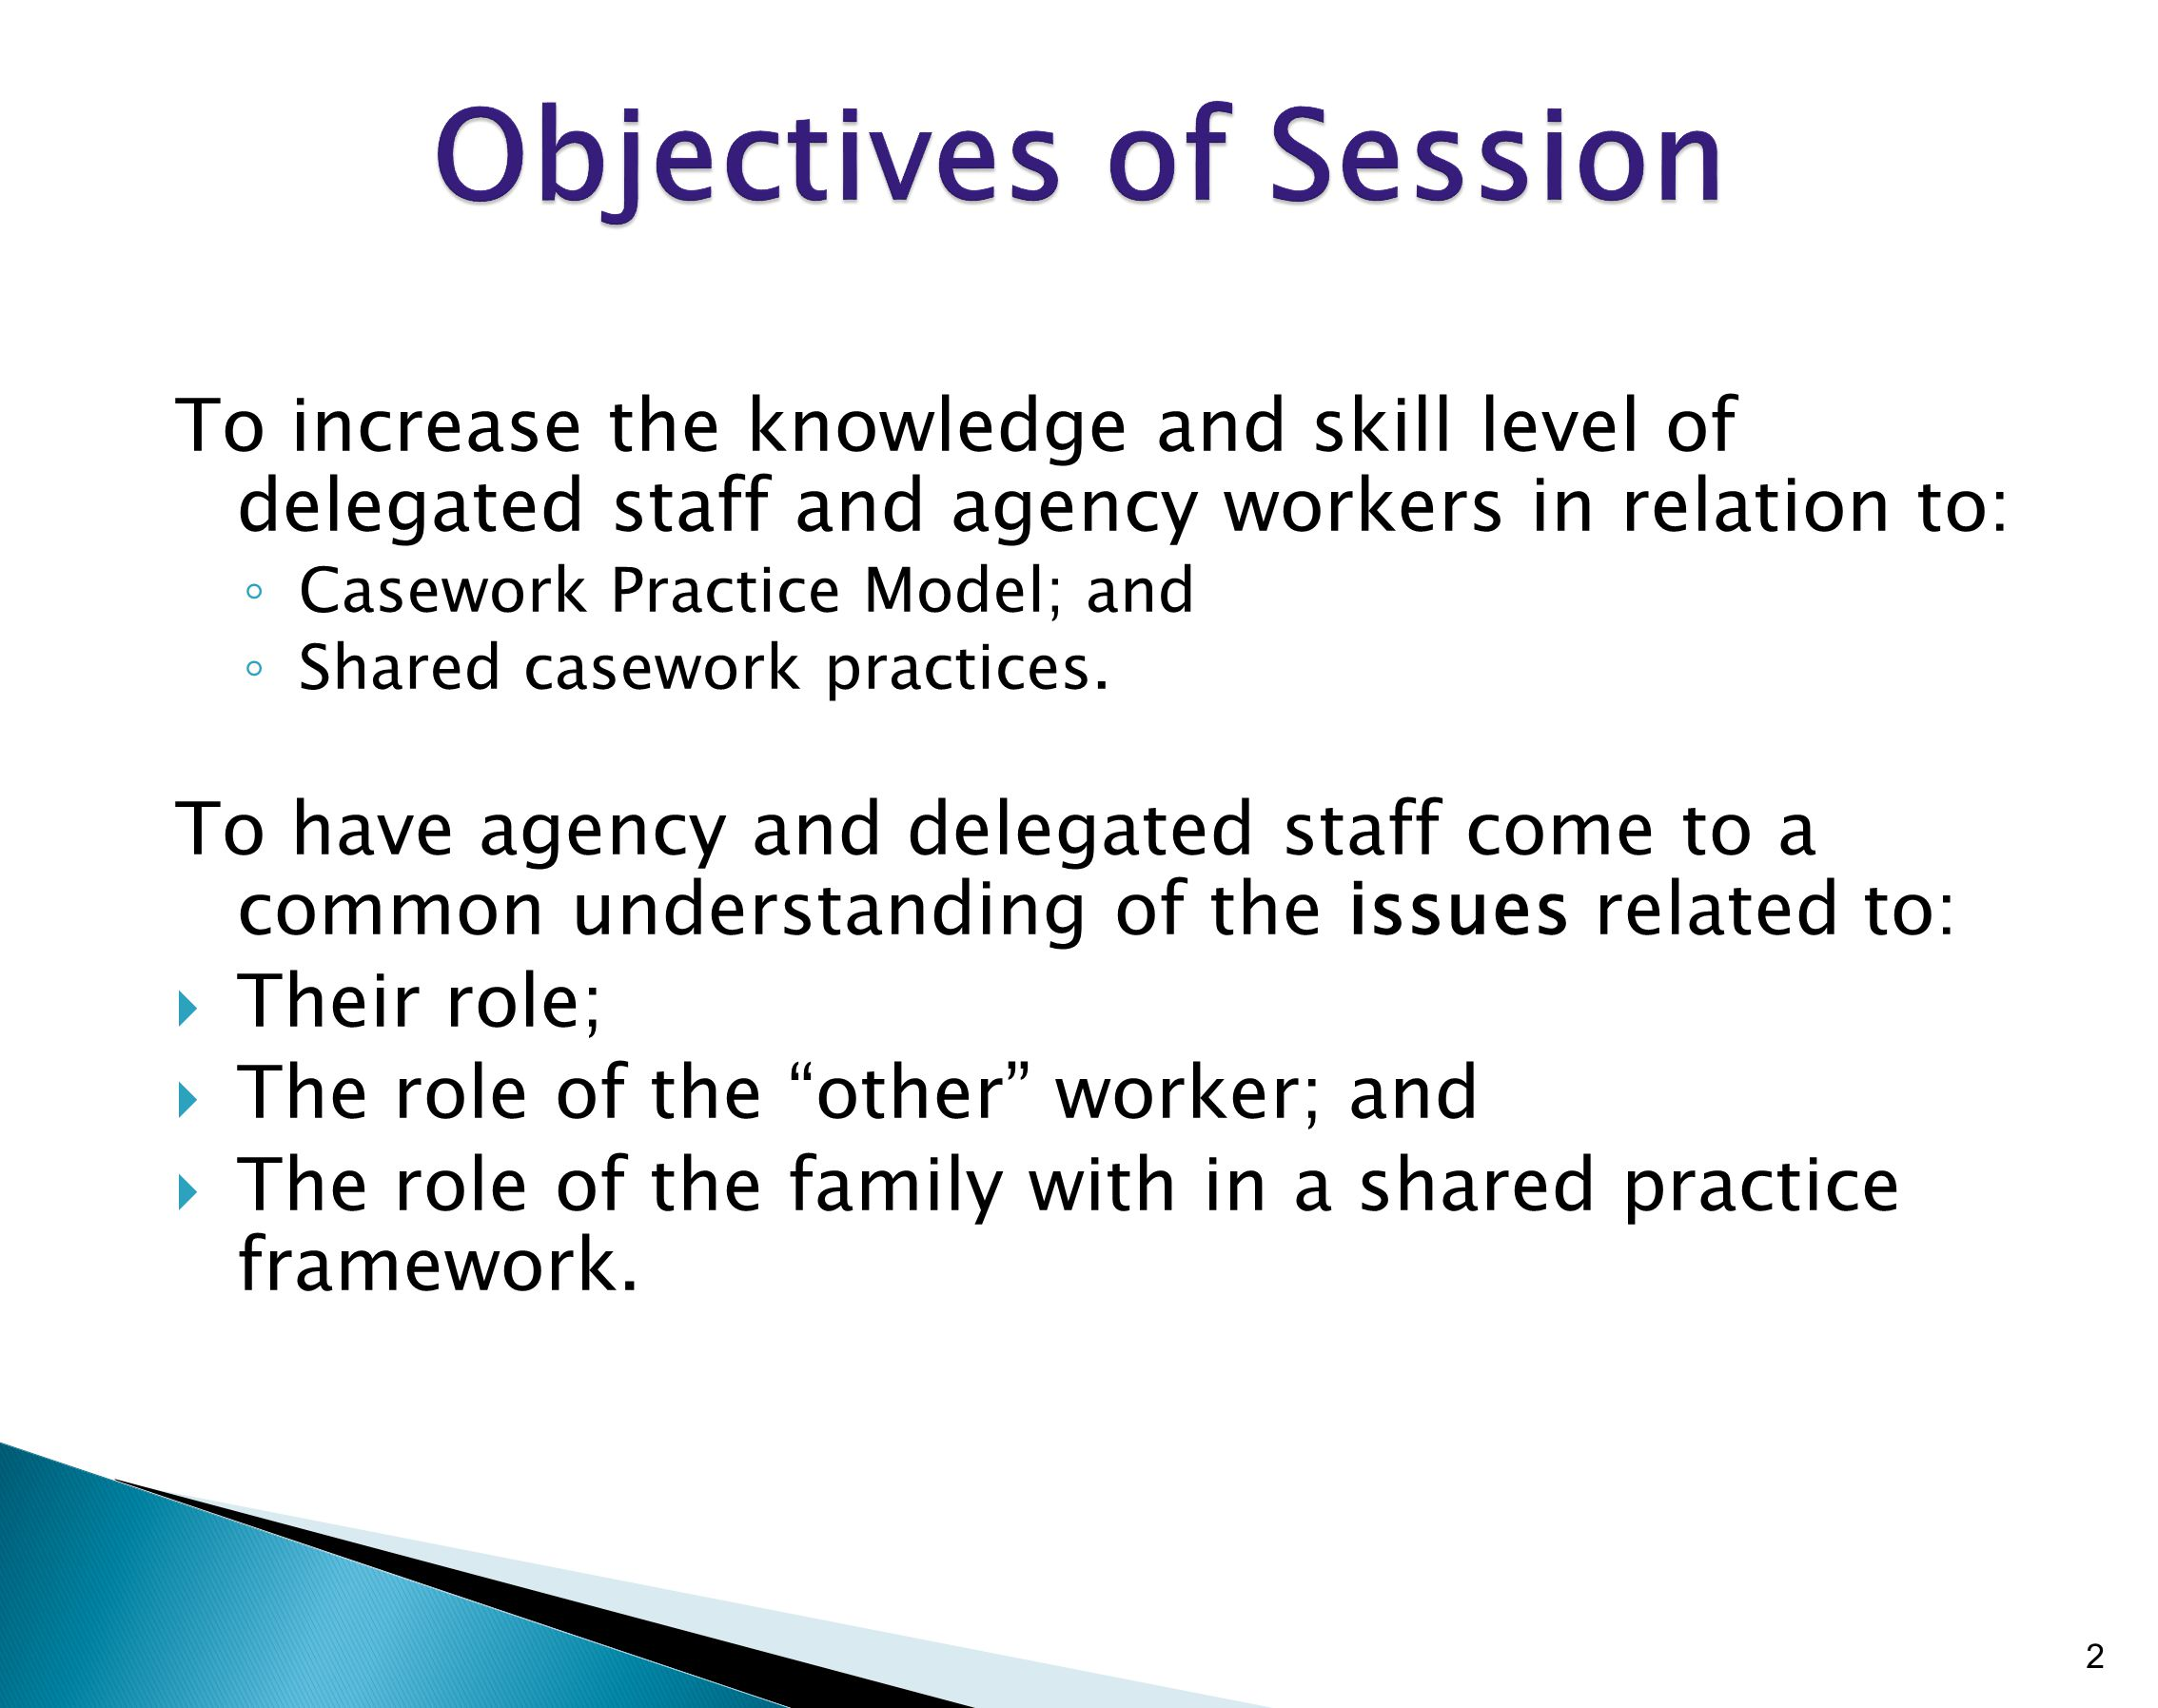 To increase the knowledge and skill level of delegated staff and agency workers in relation to: ◦ Casework Practice Model; and ◦ Shared casework practices.